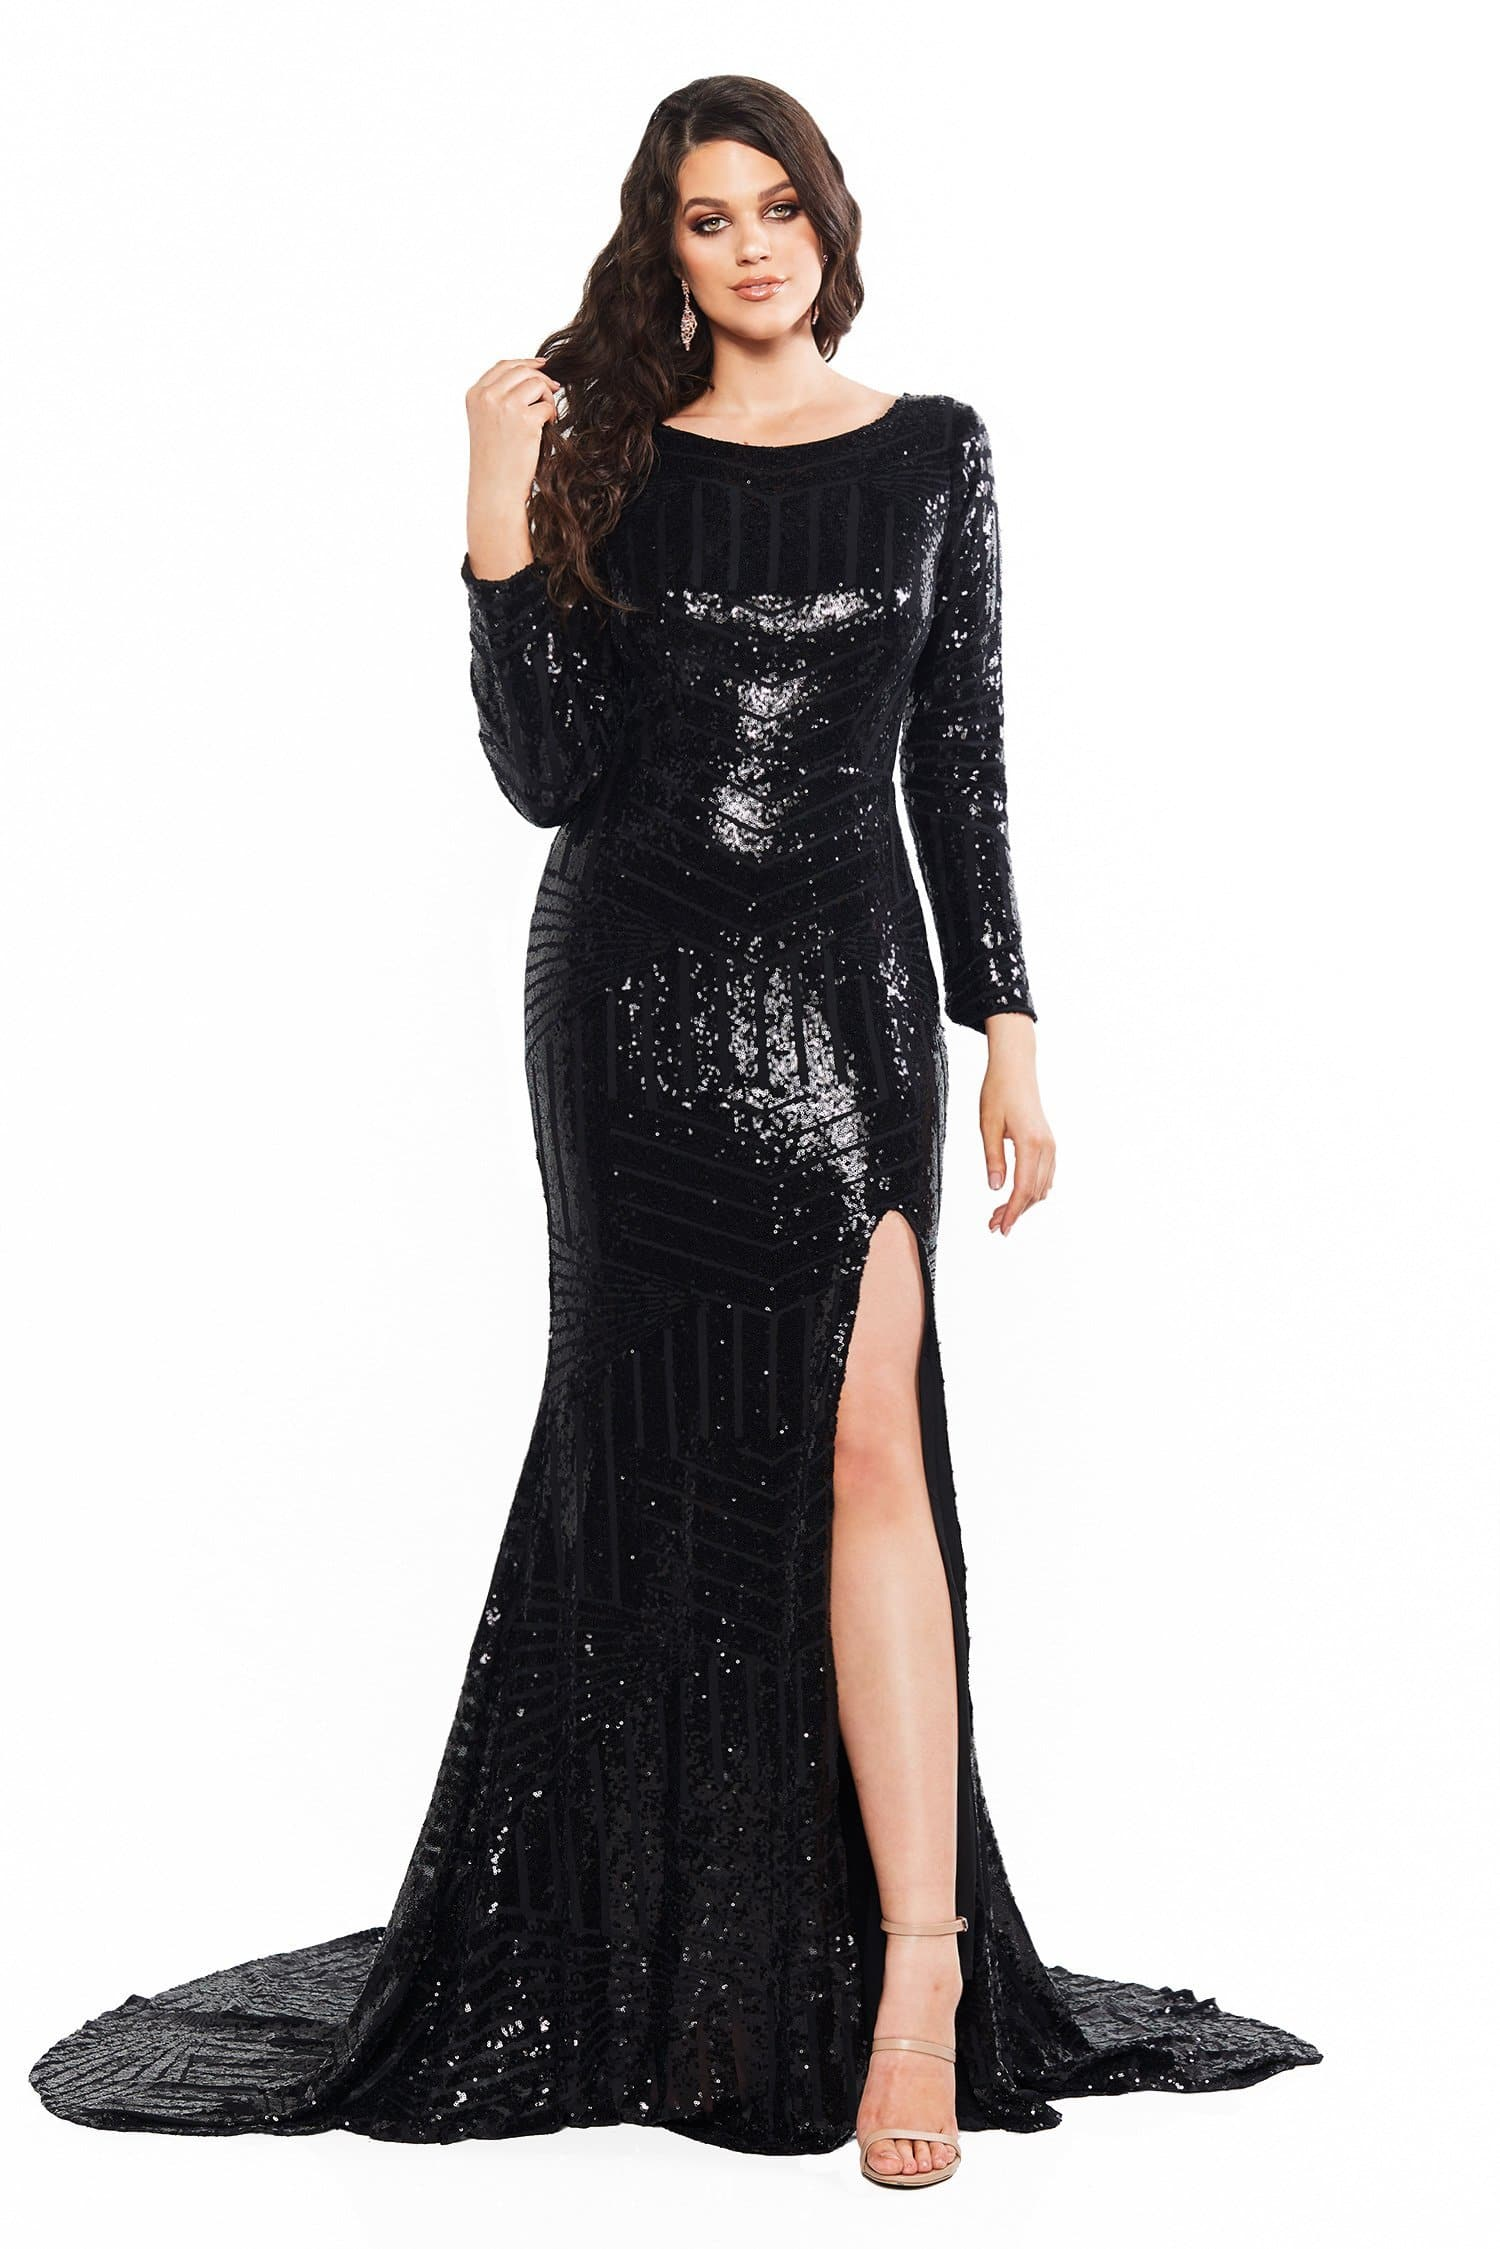 A&N Curve Aria Sequin Long Sleeve Gown with Slit - Black